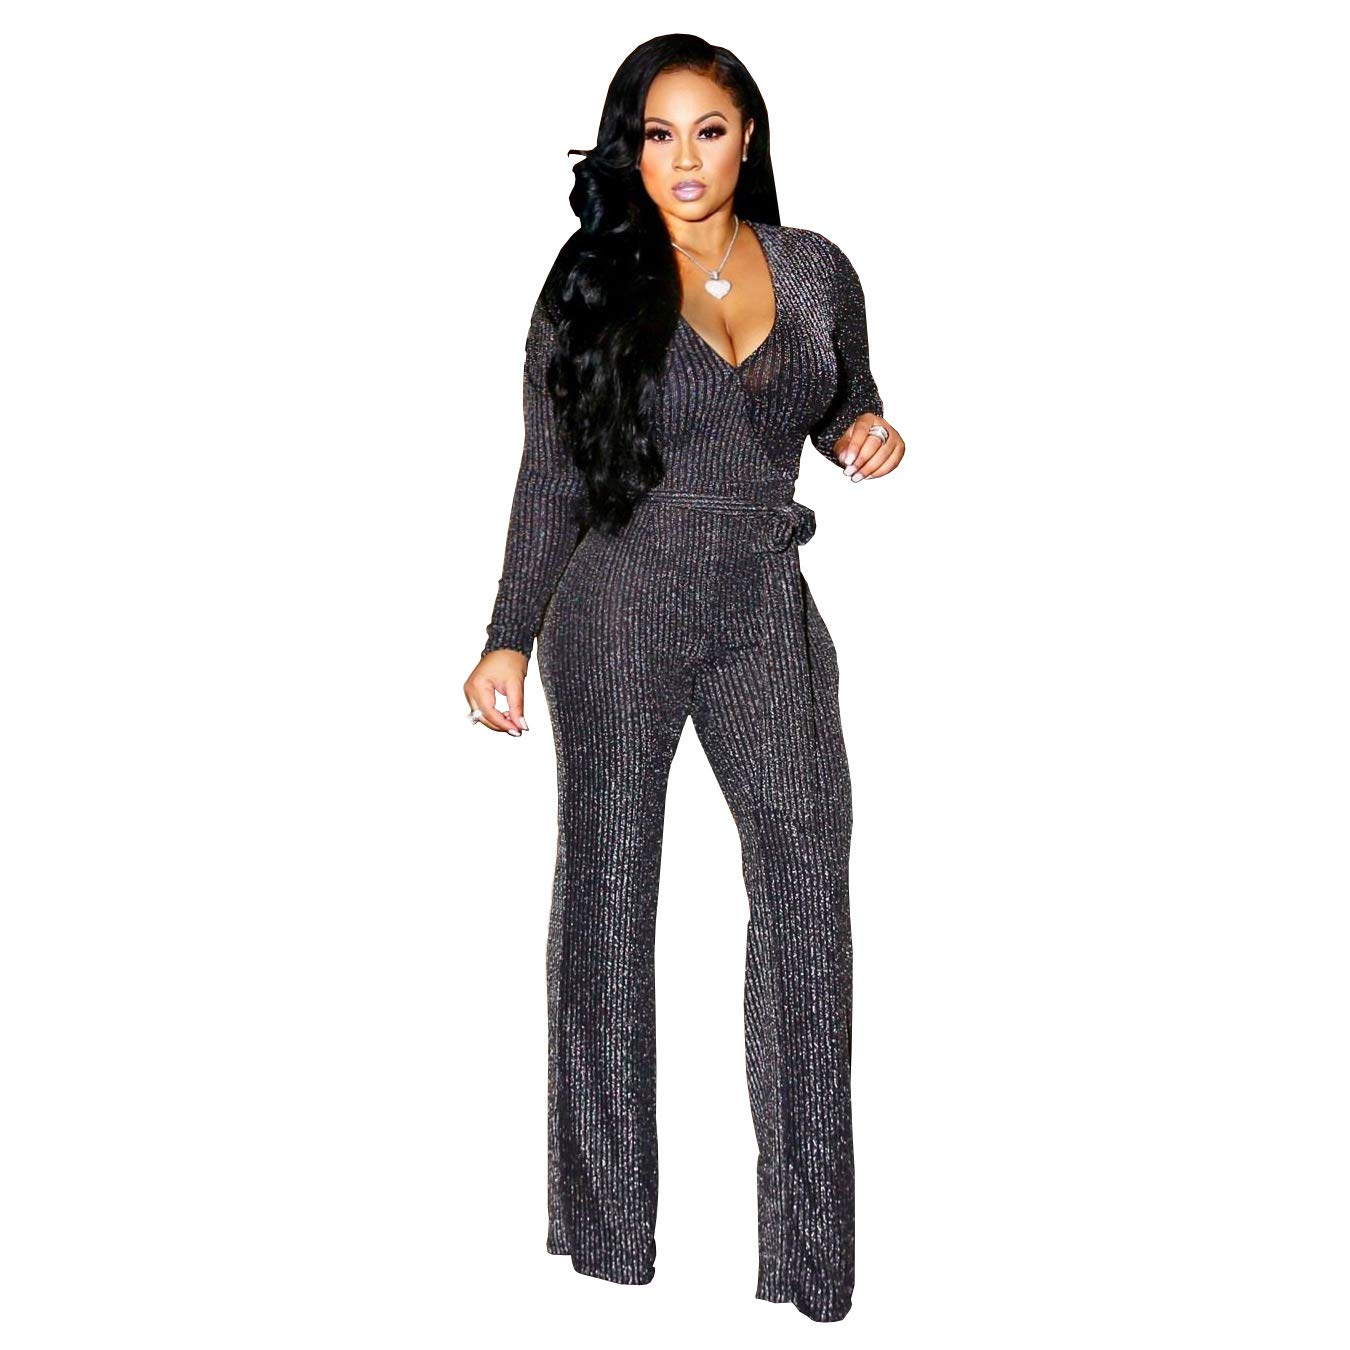 f0ee27fb8263 See all customer reviews · Sparkly Sexy Jumpsuits for Women Clubwear Long  Sleeve Elegant Party Rompers high Waisted Wide Leg Pants